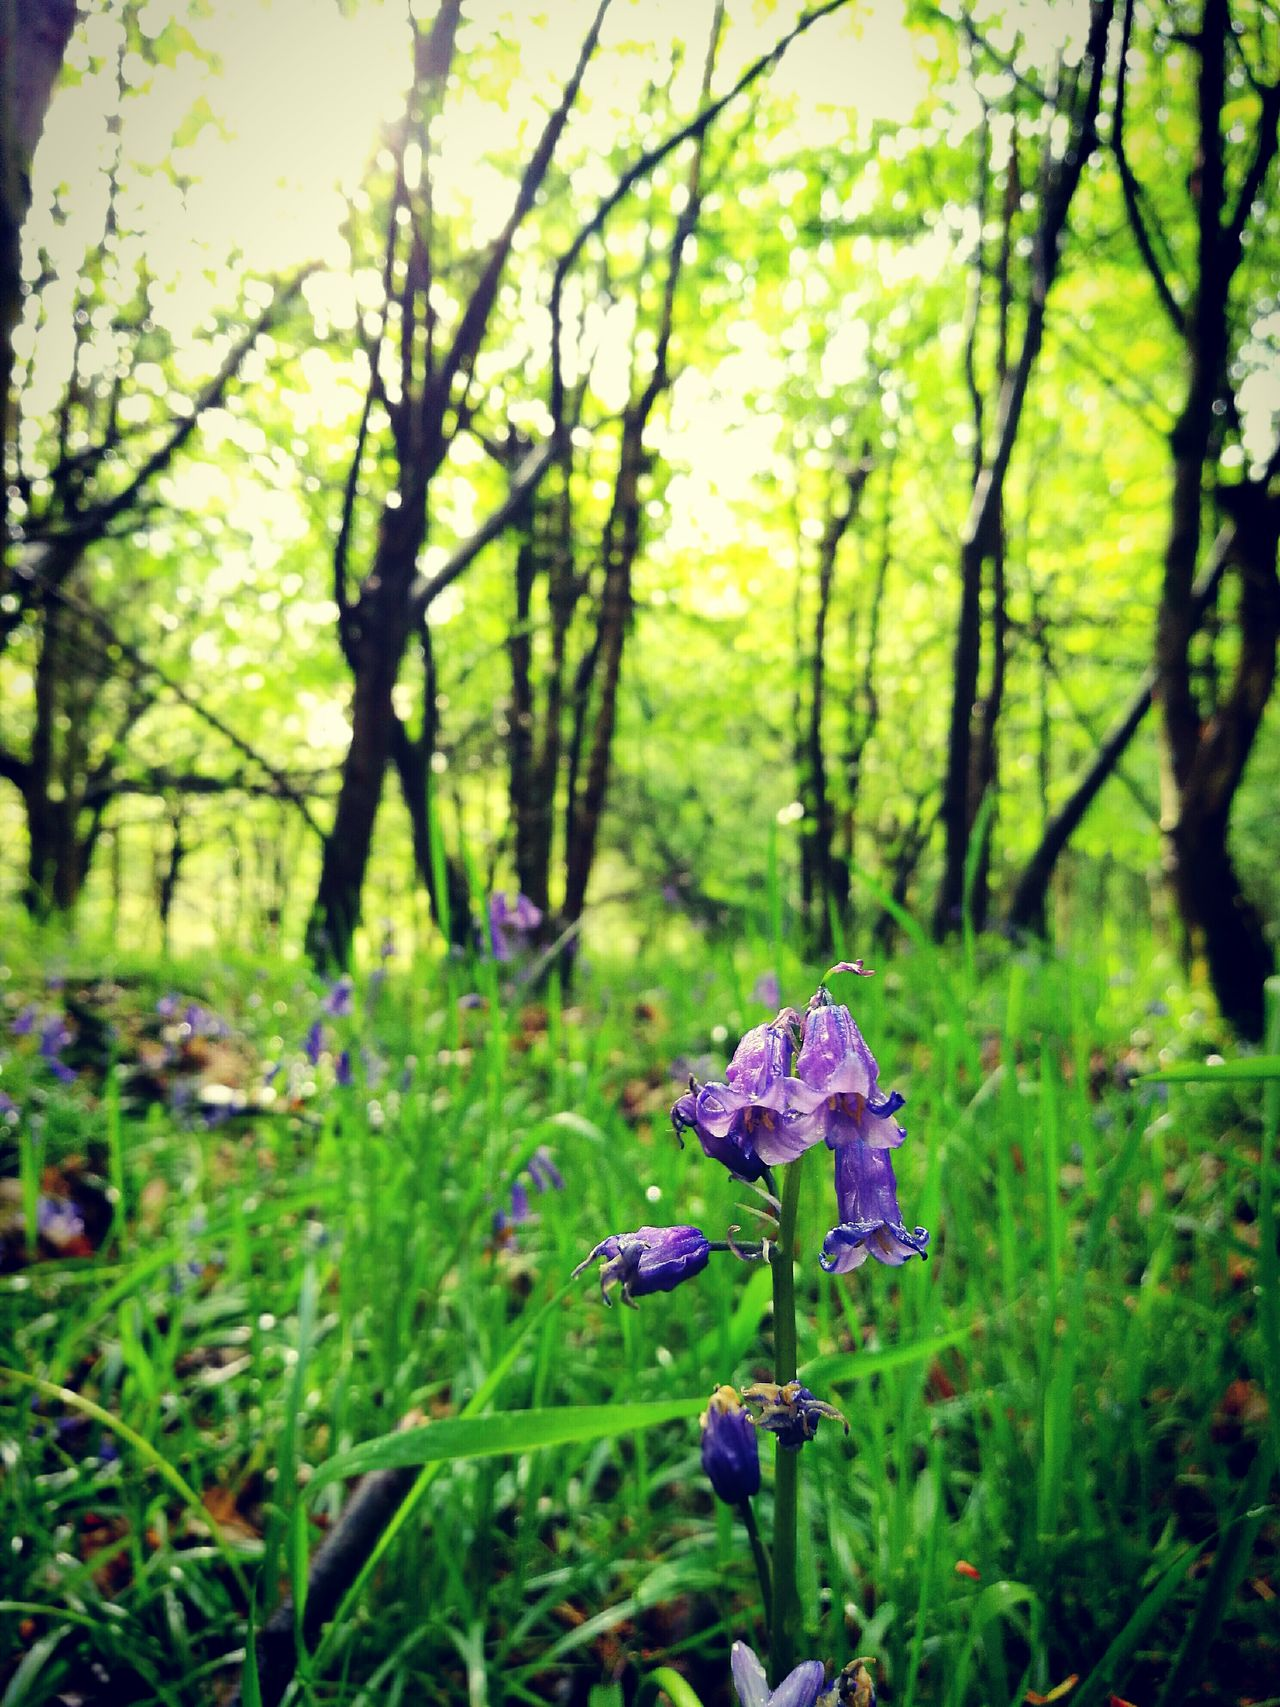 Nature Growth Beauty In Nature No People Day Forest Plant Bluebells Bluebell Wood Close-up Freshness Flower Head Fragility Flower Outdoors